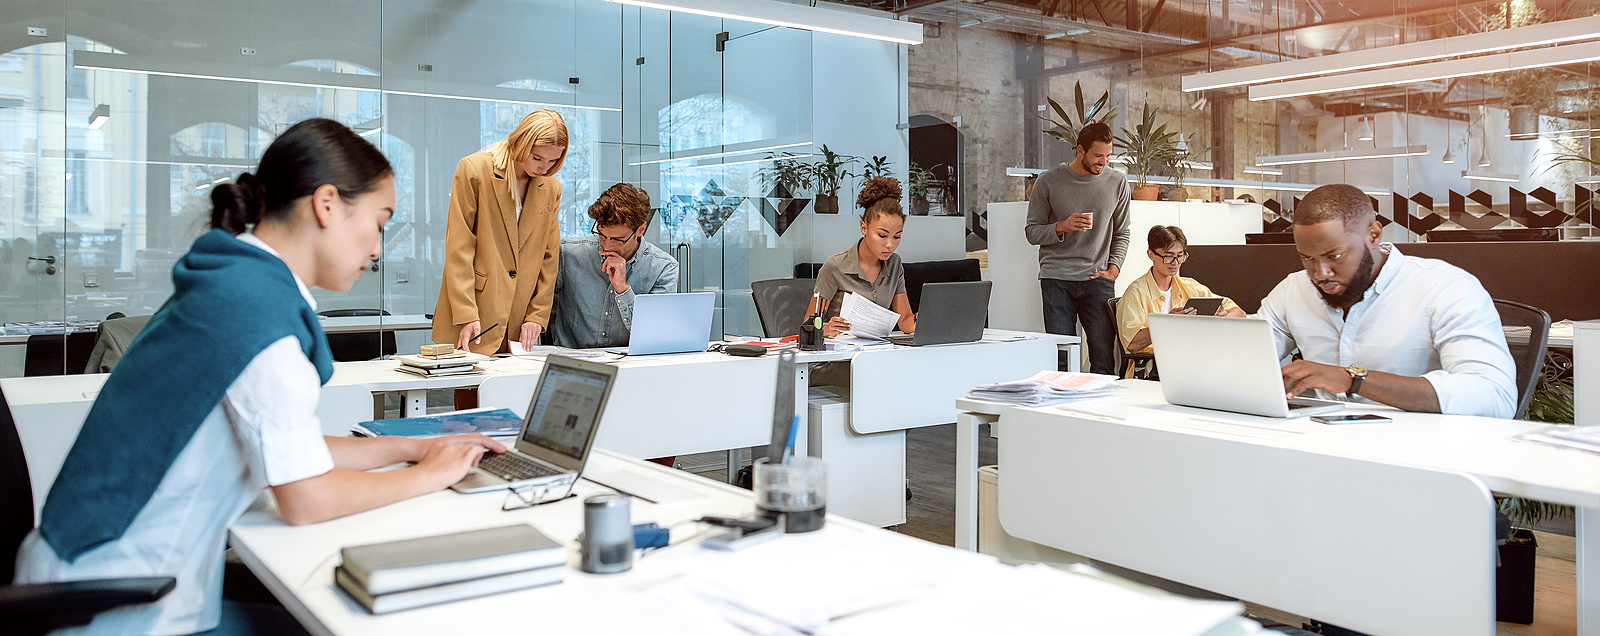 Understanding The Elements Of A Modern Workplace Culture